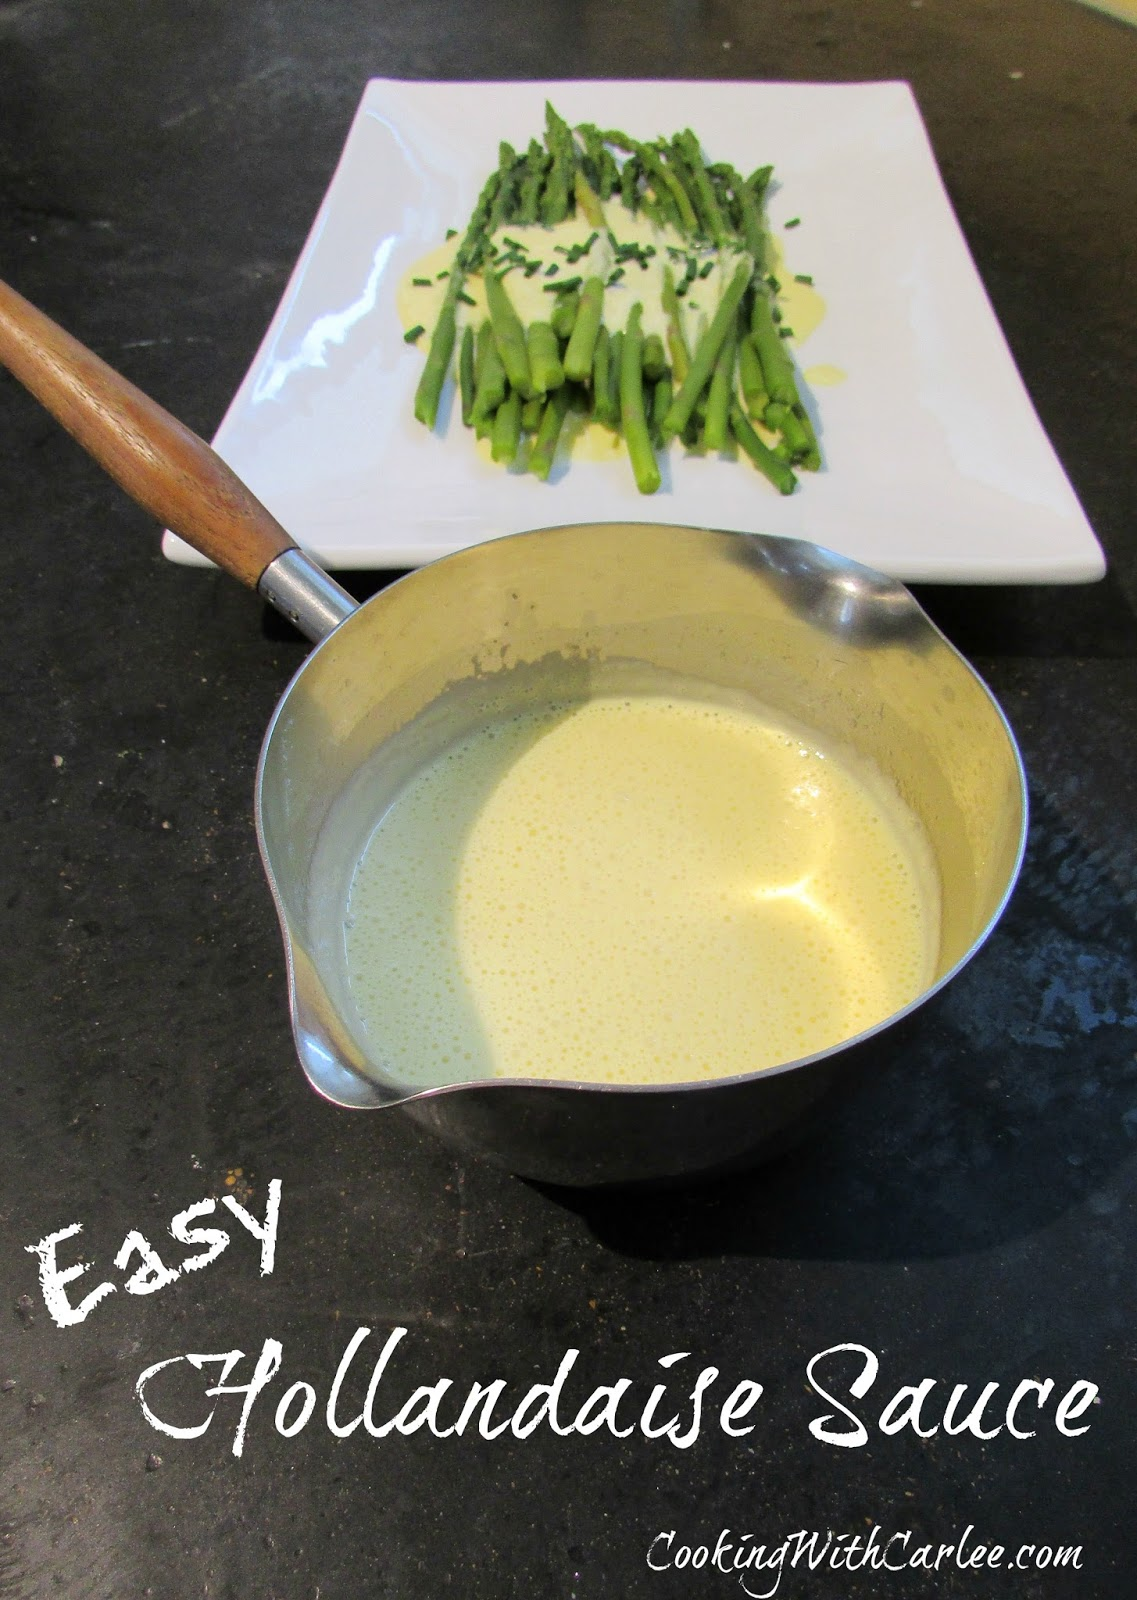 Saucepan with hollandaise sauce in it with platter of hollandaise topped asparagus in background.